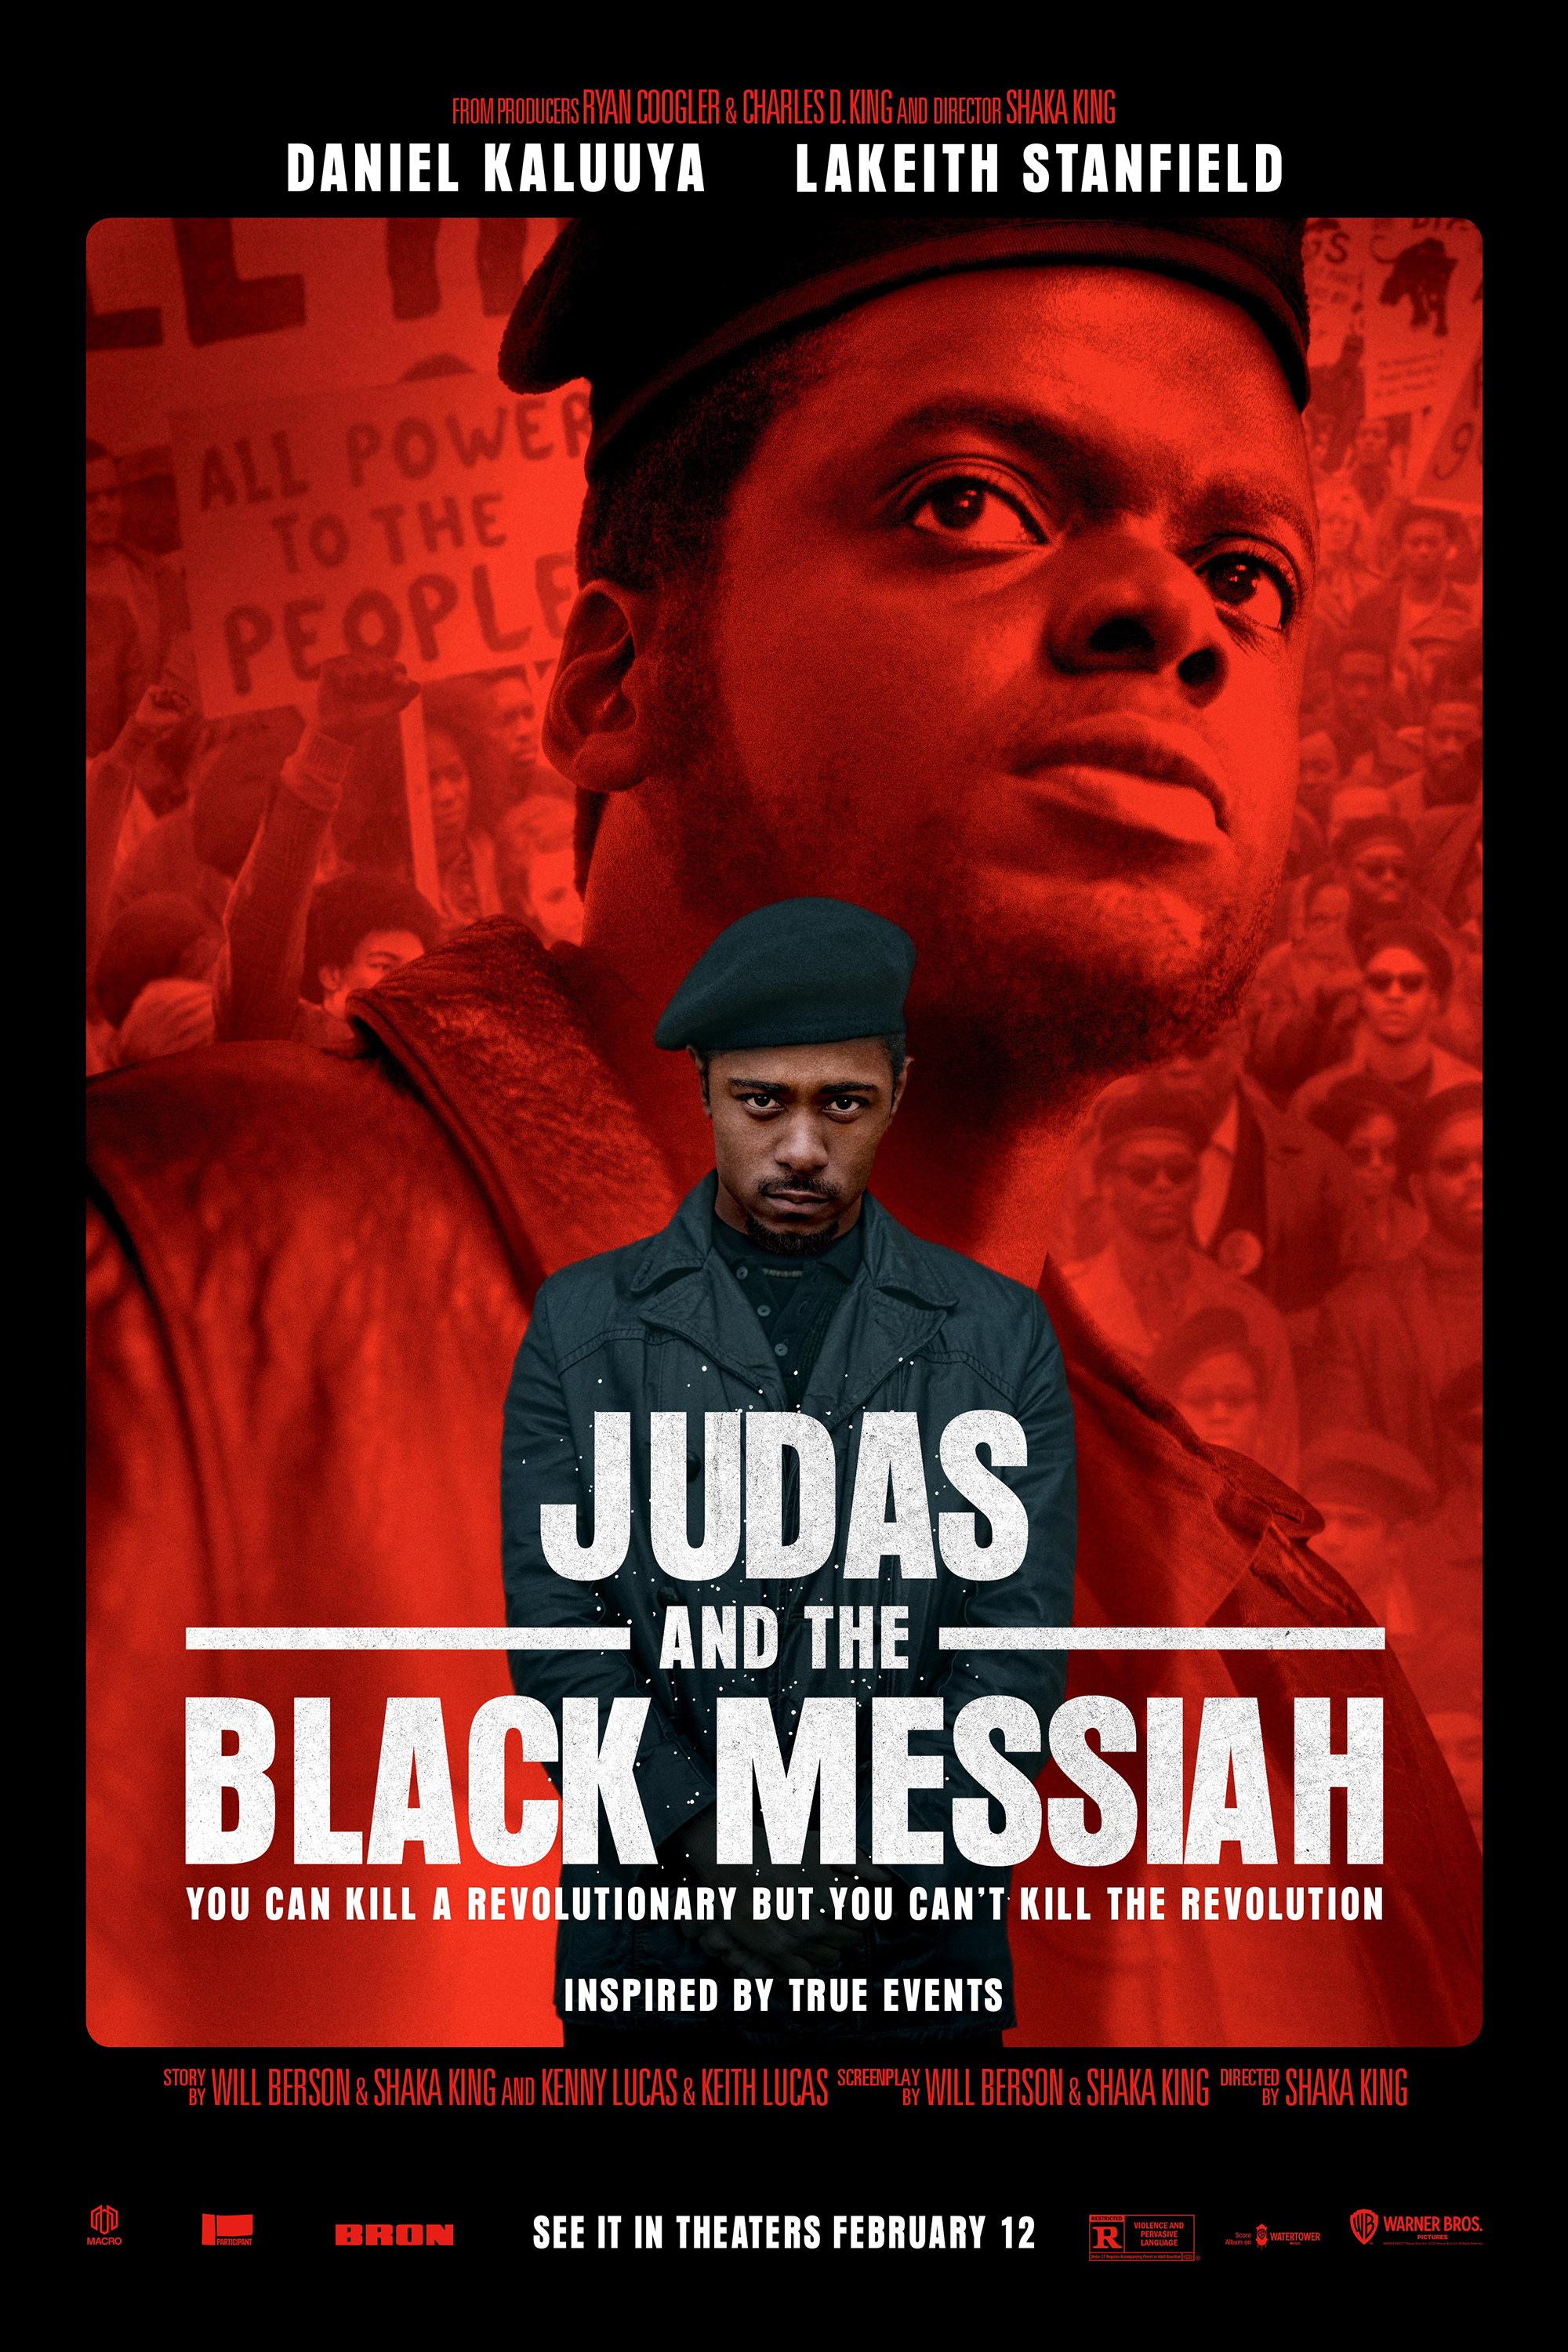 Still of Judas and the Black Messiah